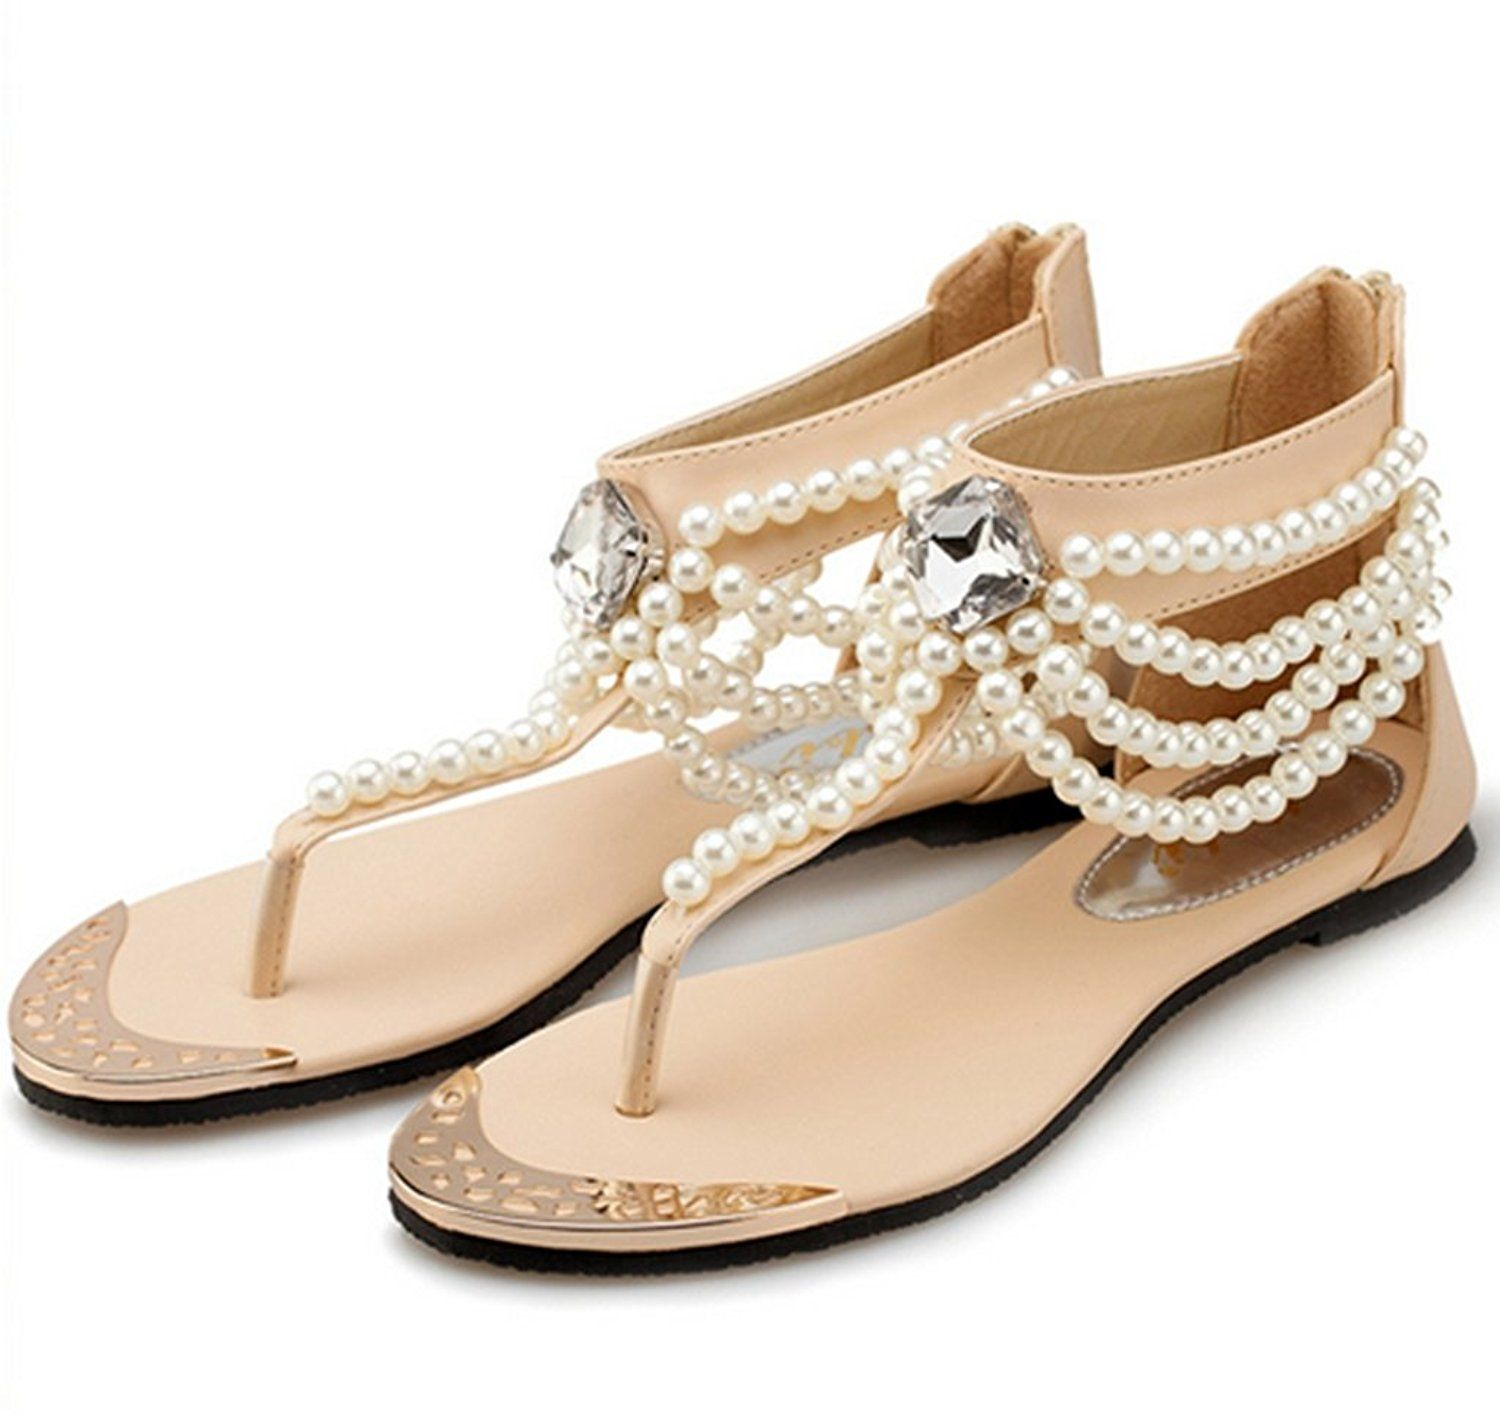 VogueZone009 Girls Open Toe PU Soft Material Solid Sandals with Bowknot and Metal Chain